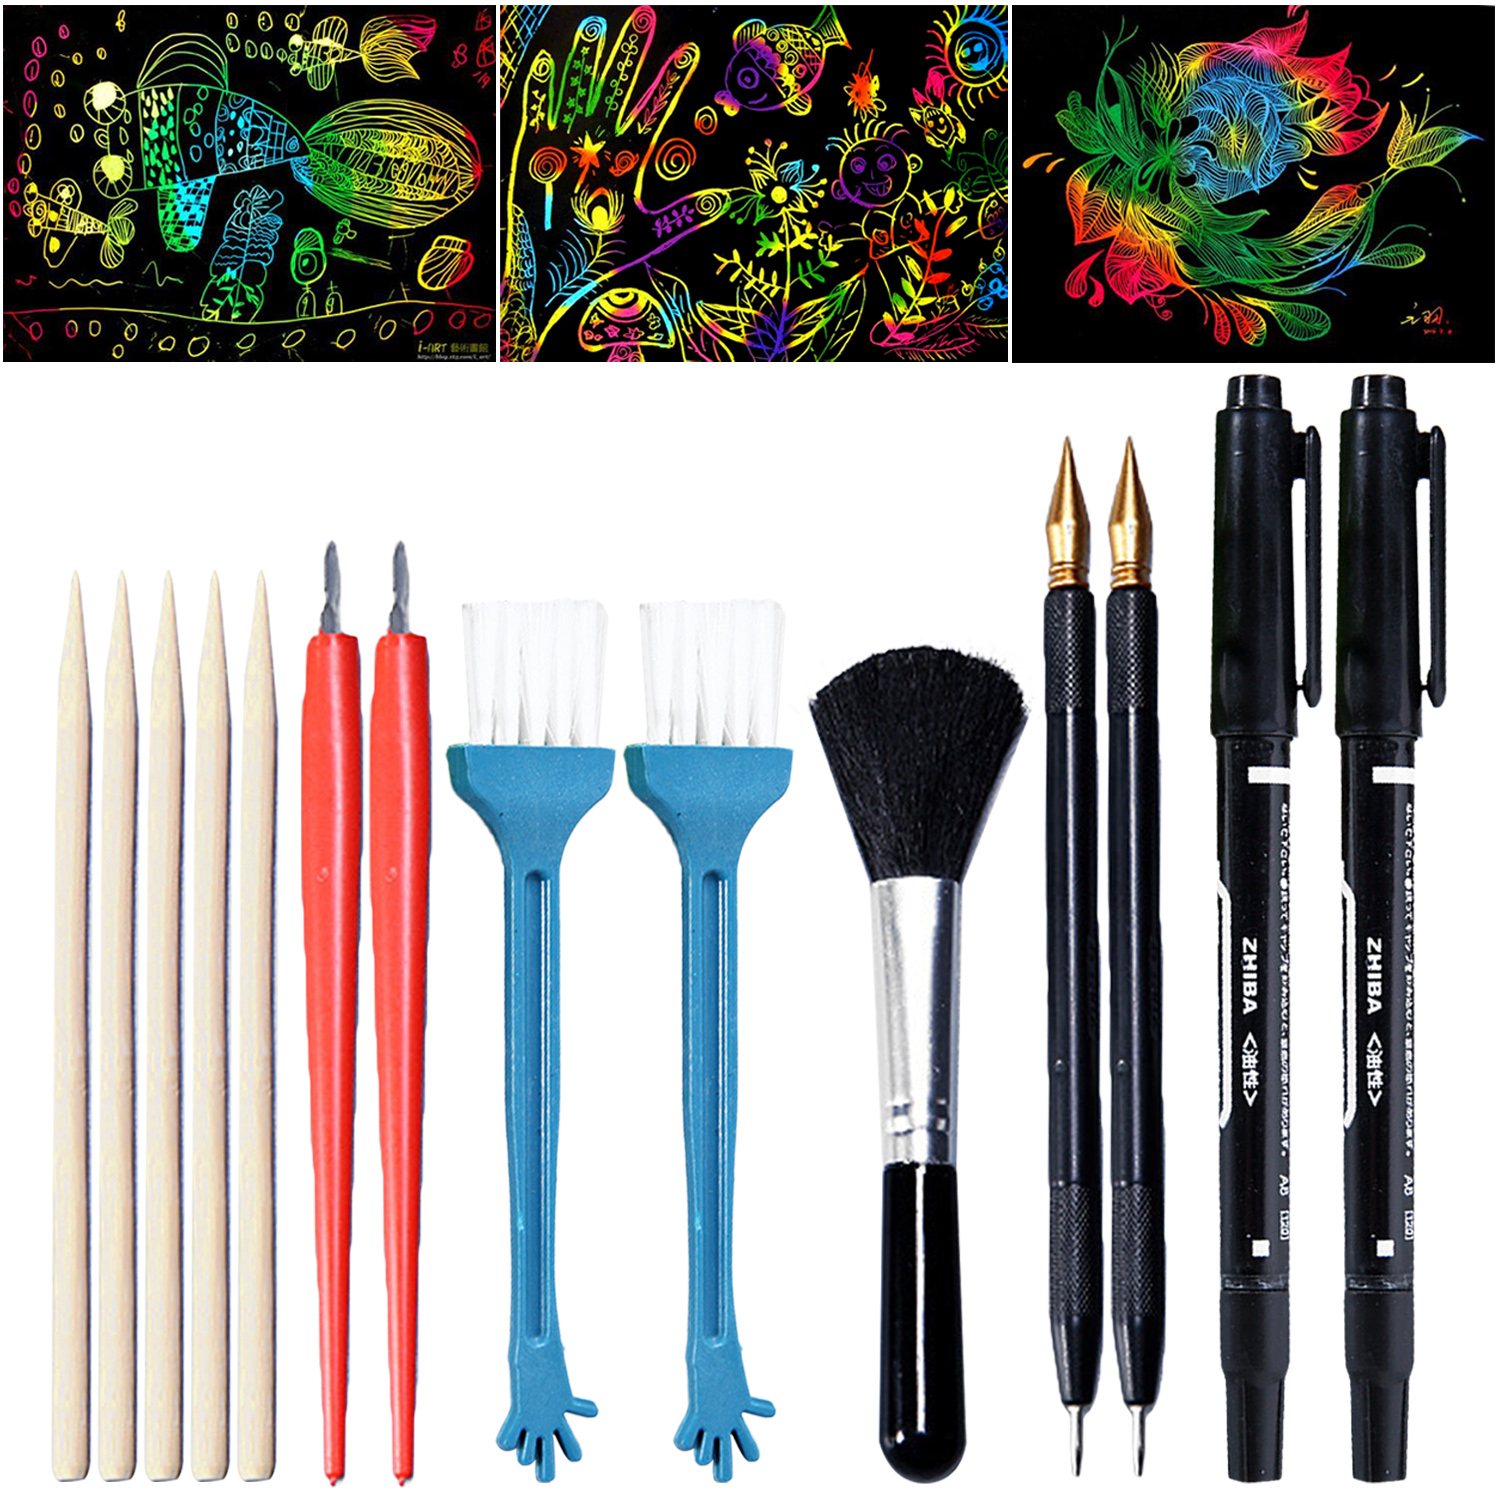 14PCS Scratch Tool Set With Bamboo Sticks Scraper Repair Scratch Pen Black Brush For Kids Children Scratch Painting Gift